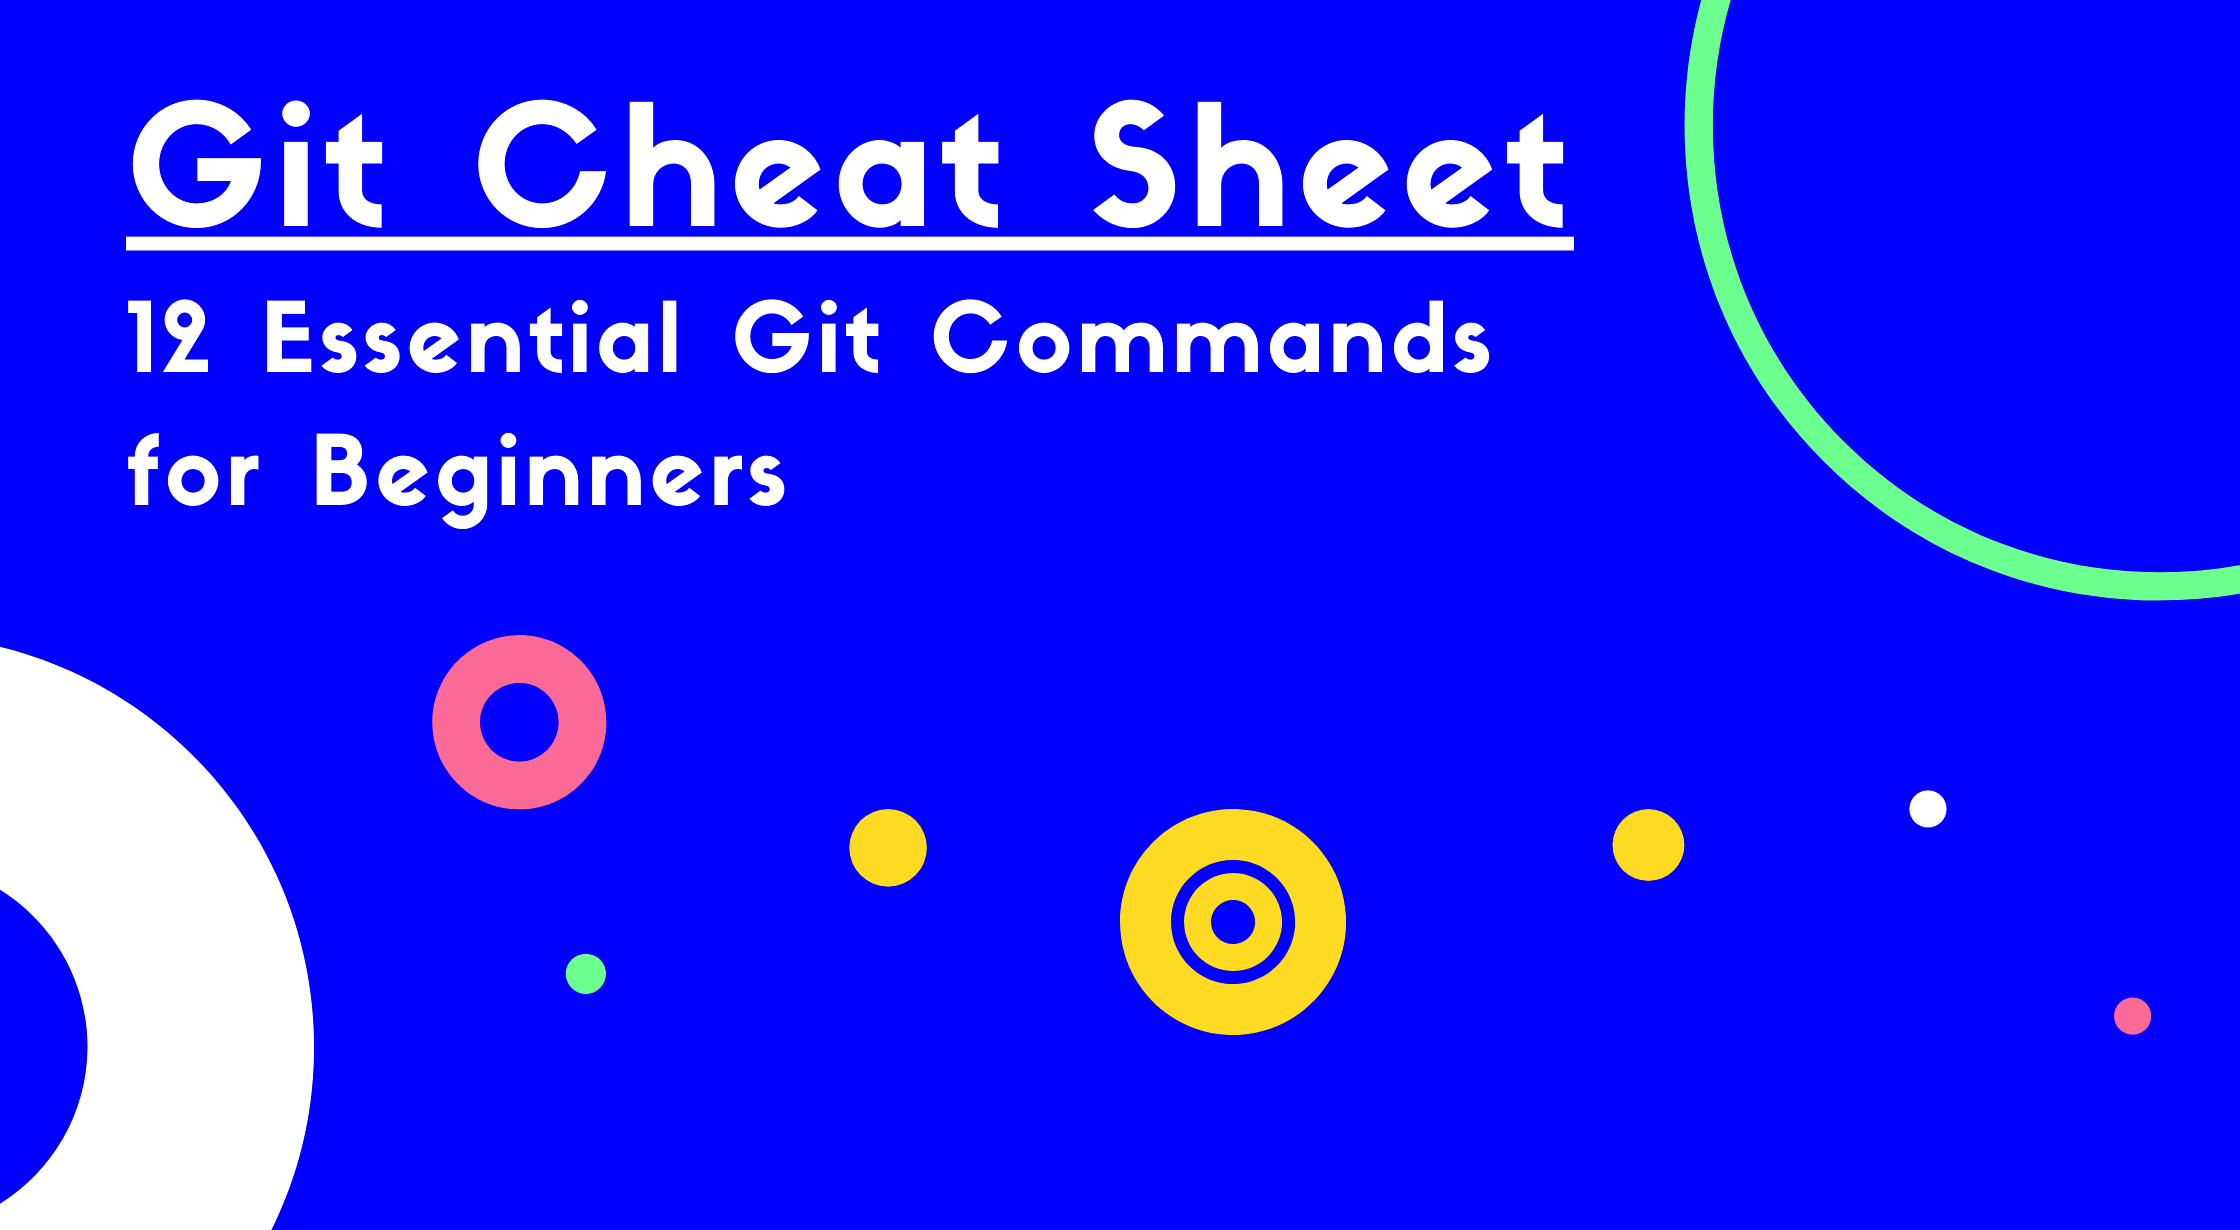 Image of Git cheat sheet: 12 essential Git commands for beginners